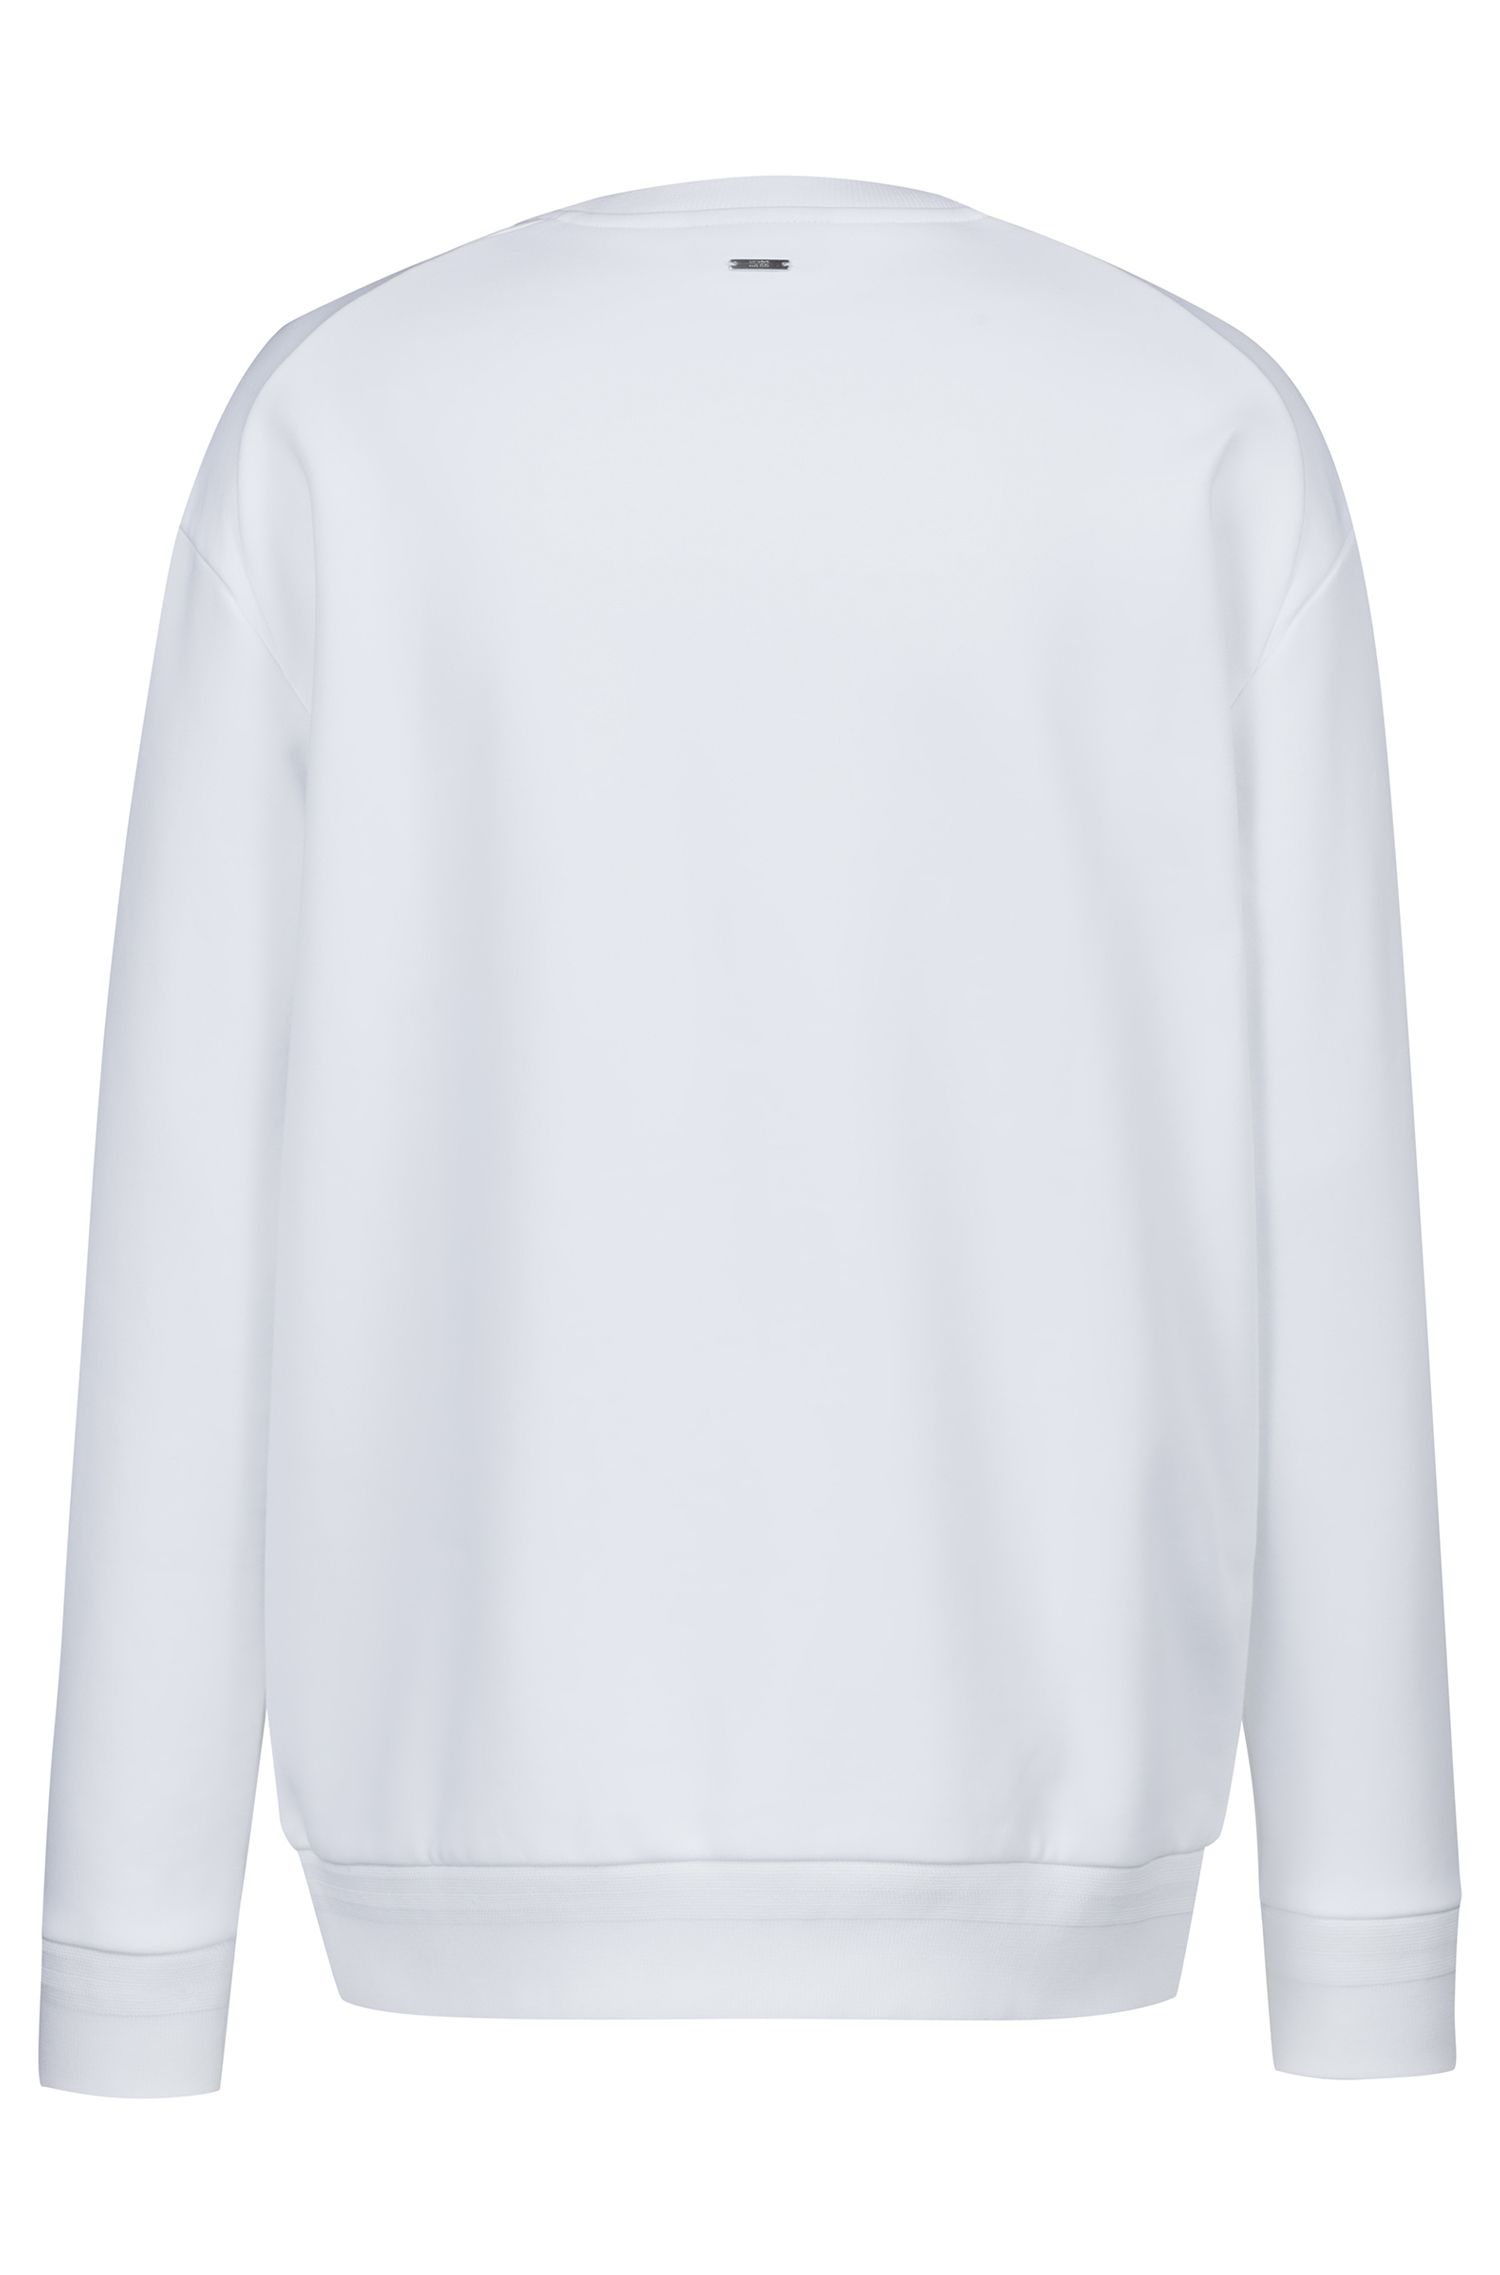 Sweat en polaire Oversized Fit à motif atomes brodé, Blanc